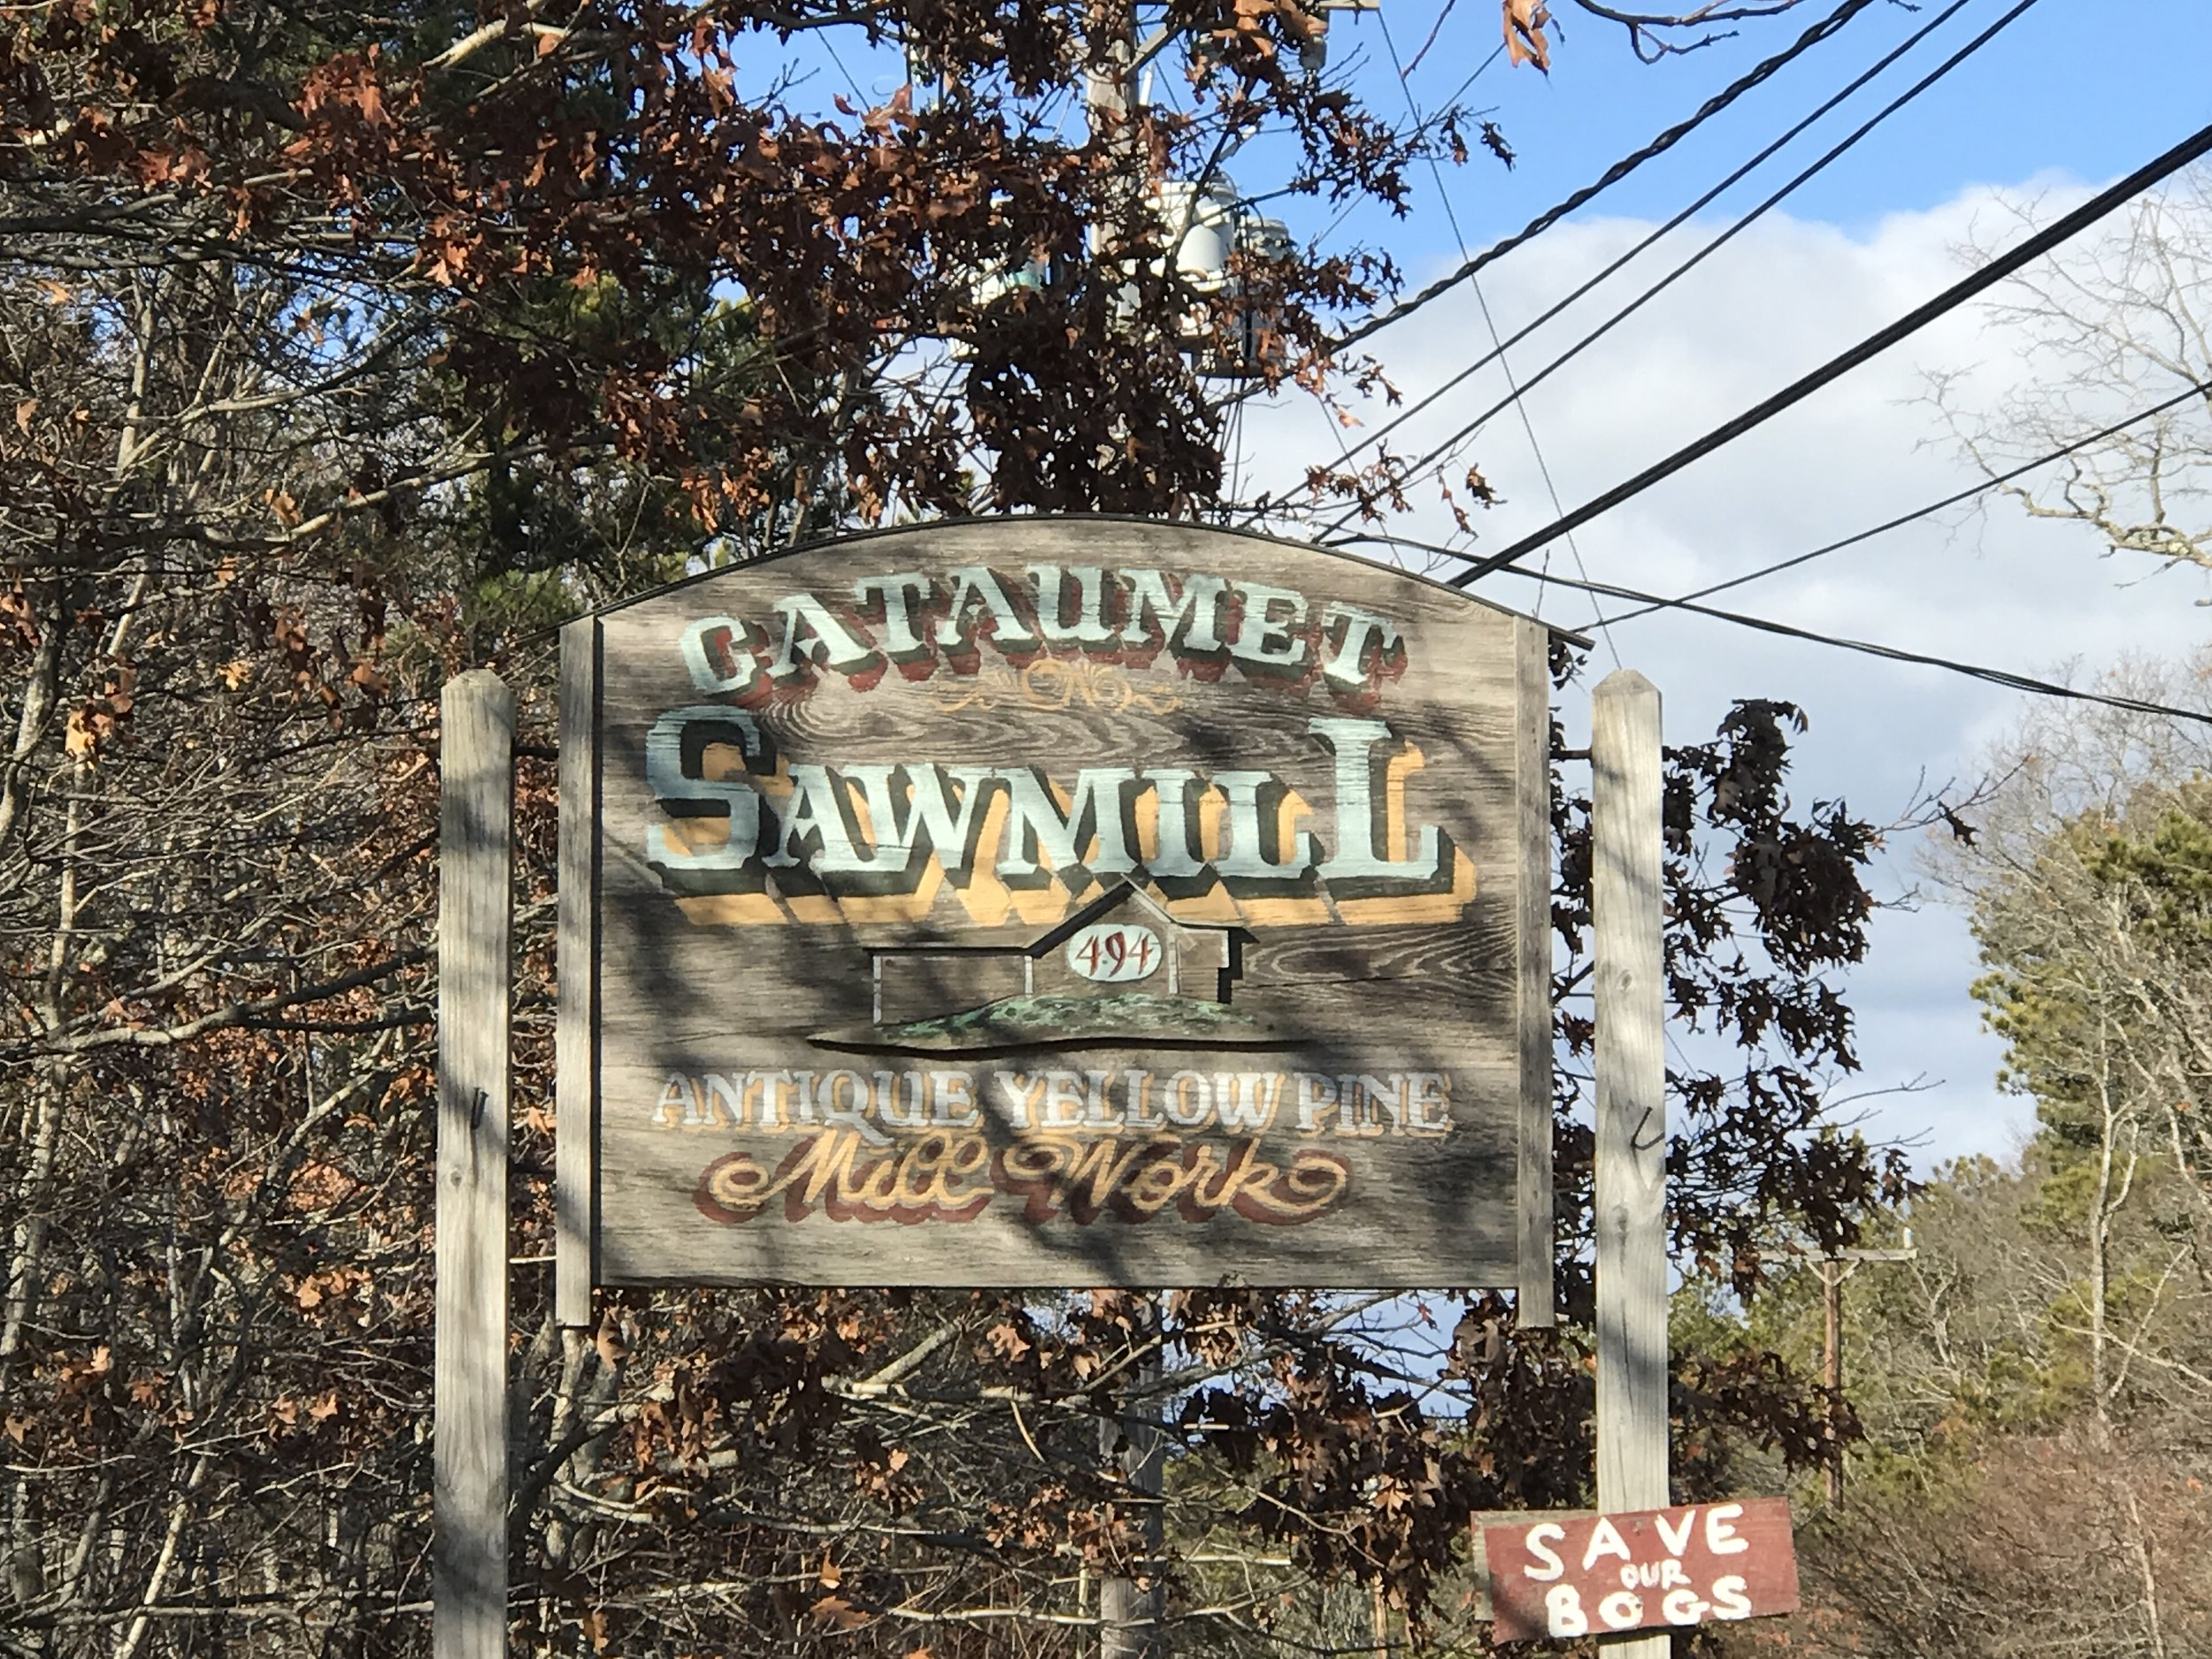 But first a trip to Cataumet Sawmill...